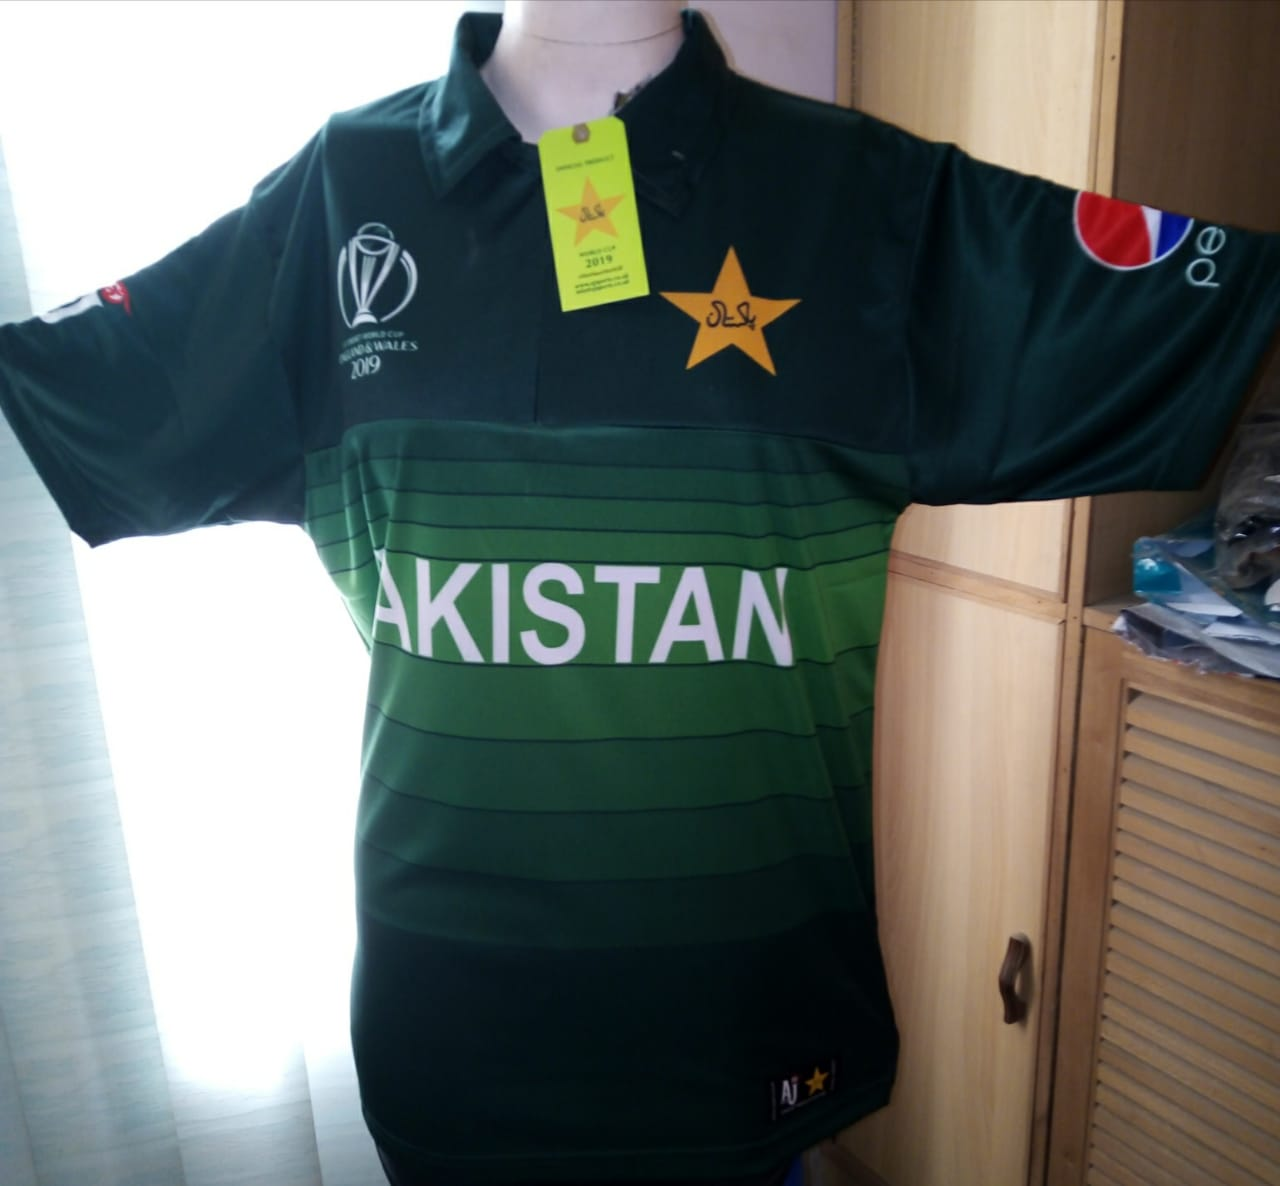 Pakistan World Cup Shirt